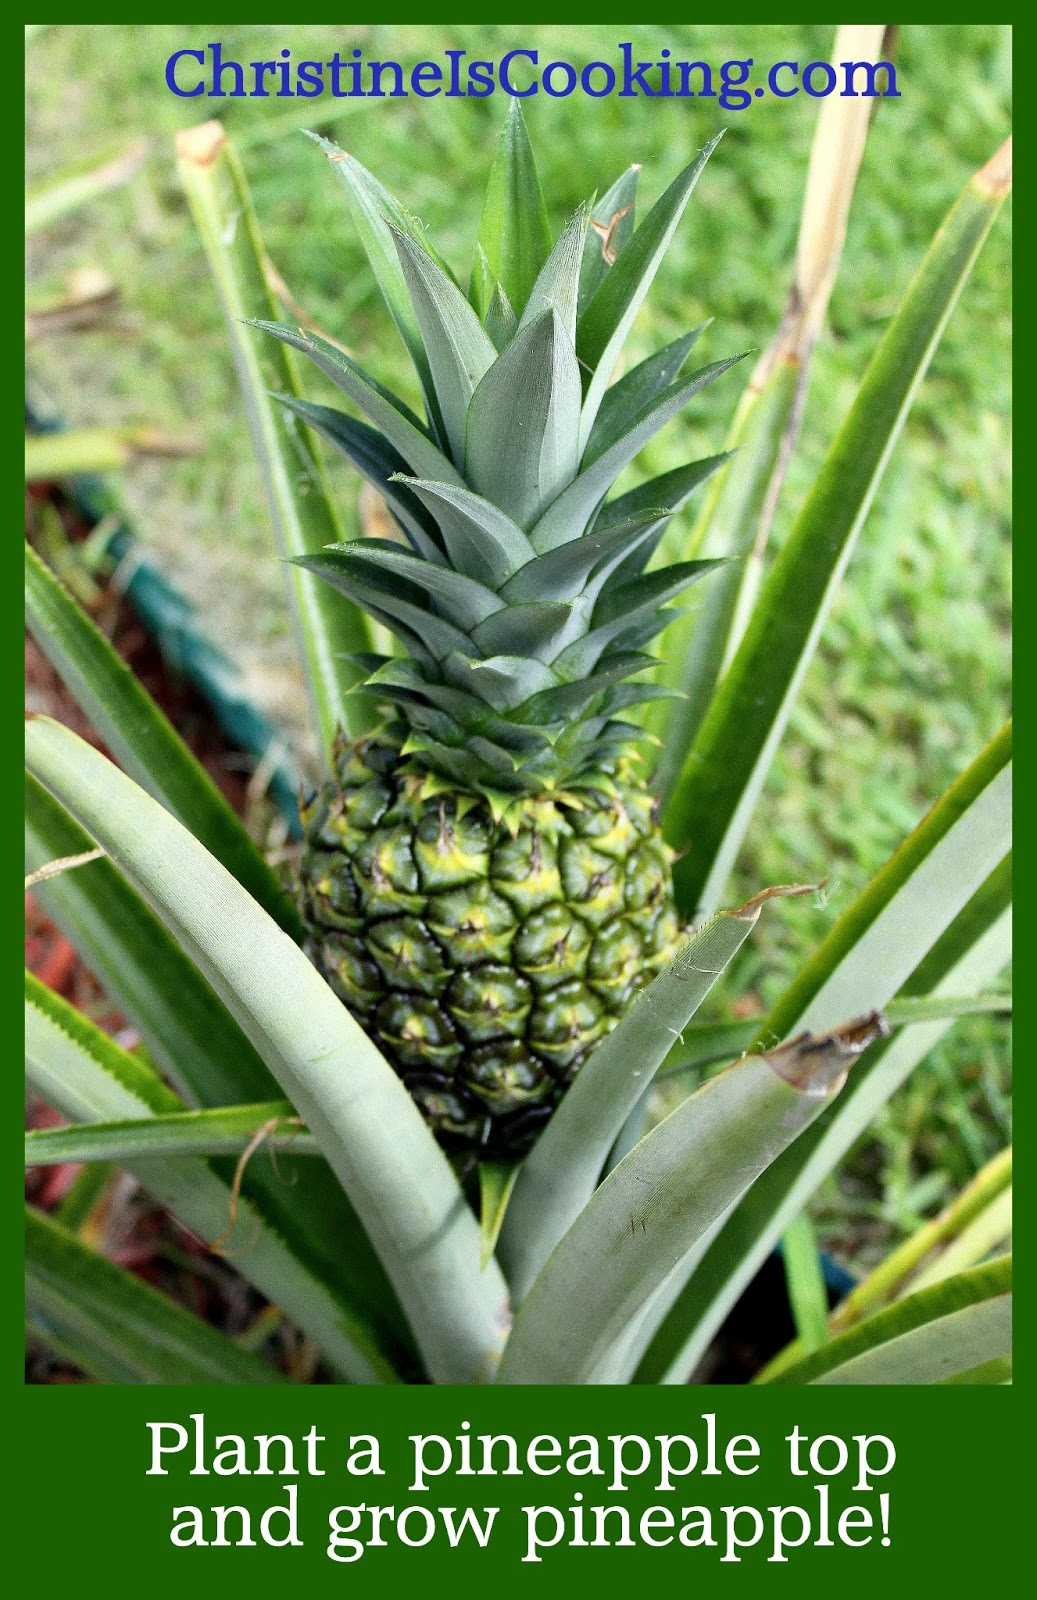 How To Plant A Pineapple Top And